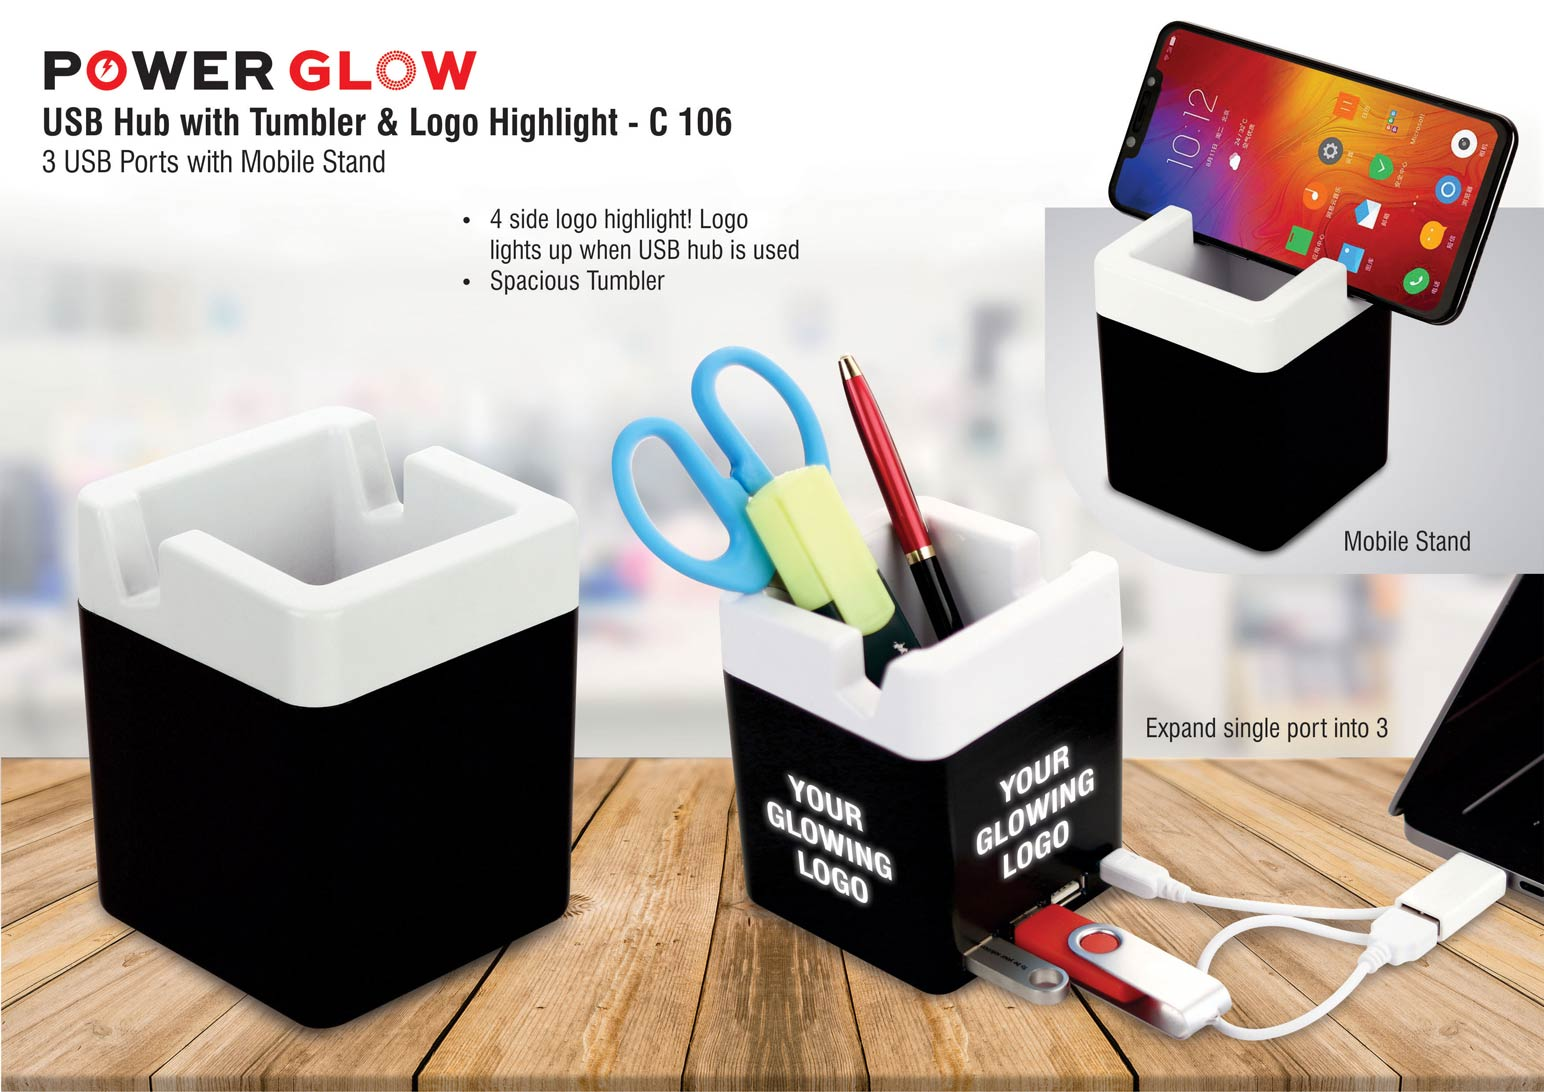 C106 - PowerGlow USB hub with tumbler and logo highlight | 3 USB ports | with mobile stand